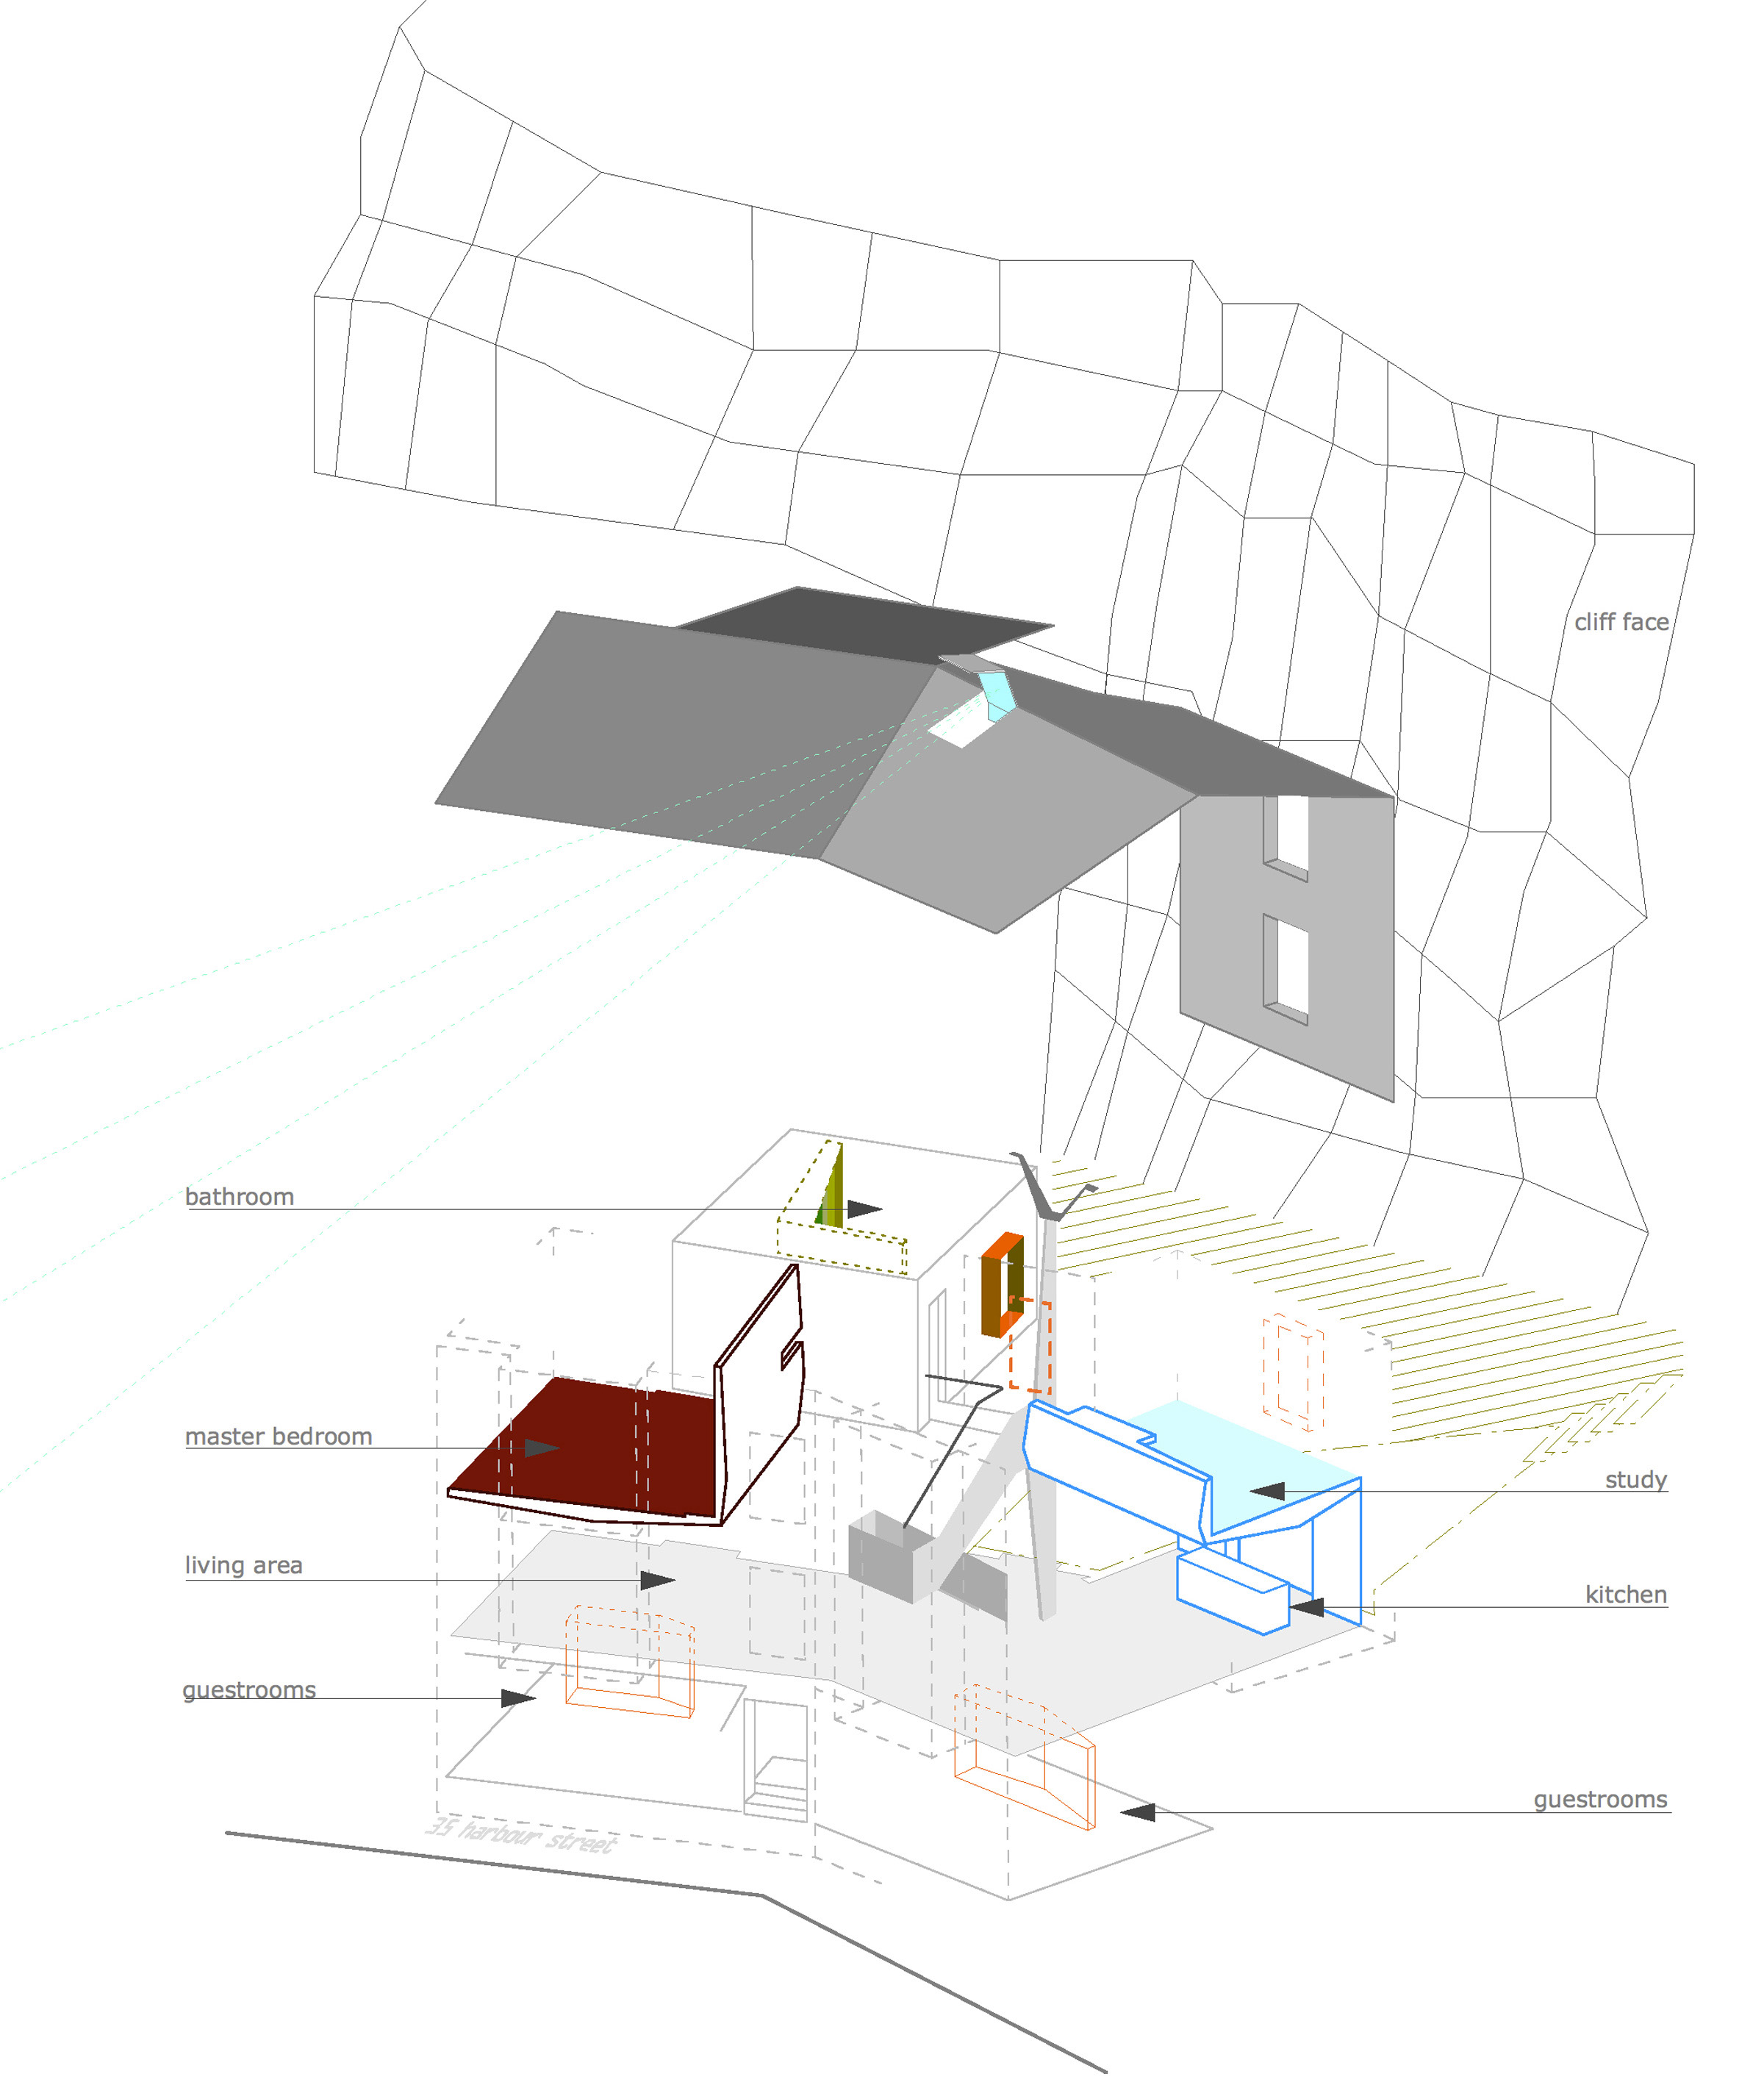 35_Harbour Street Axonometric drawing of the building interventions